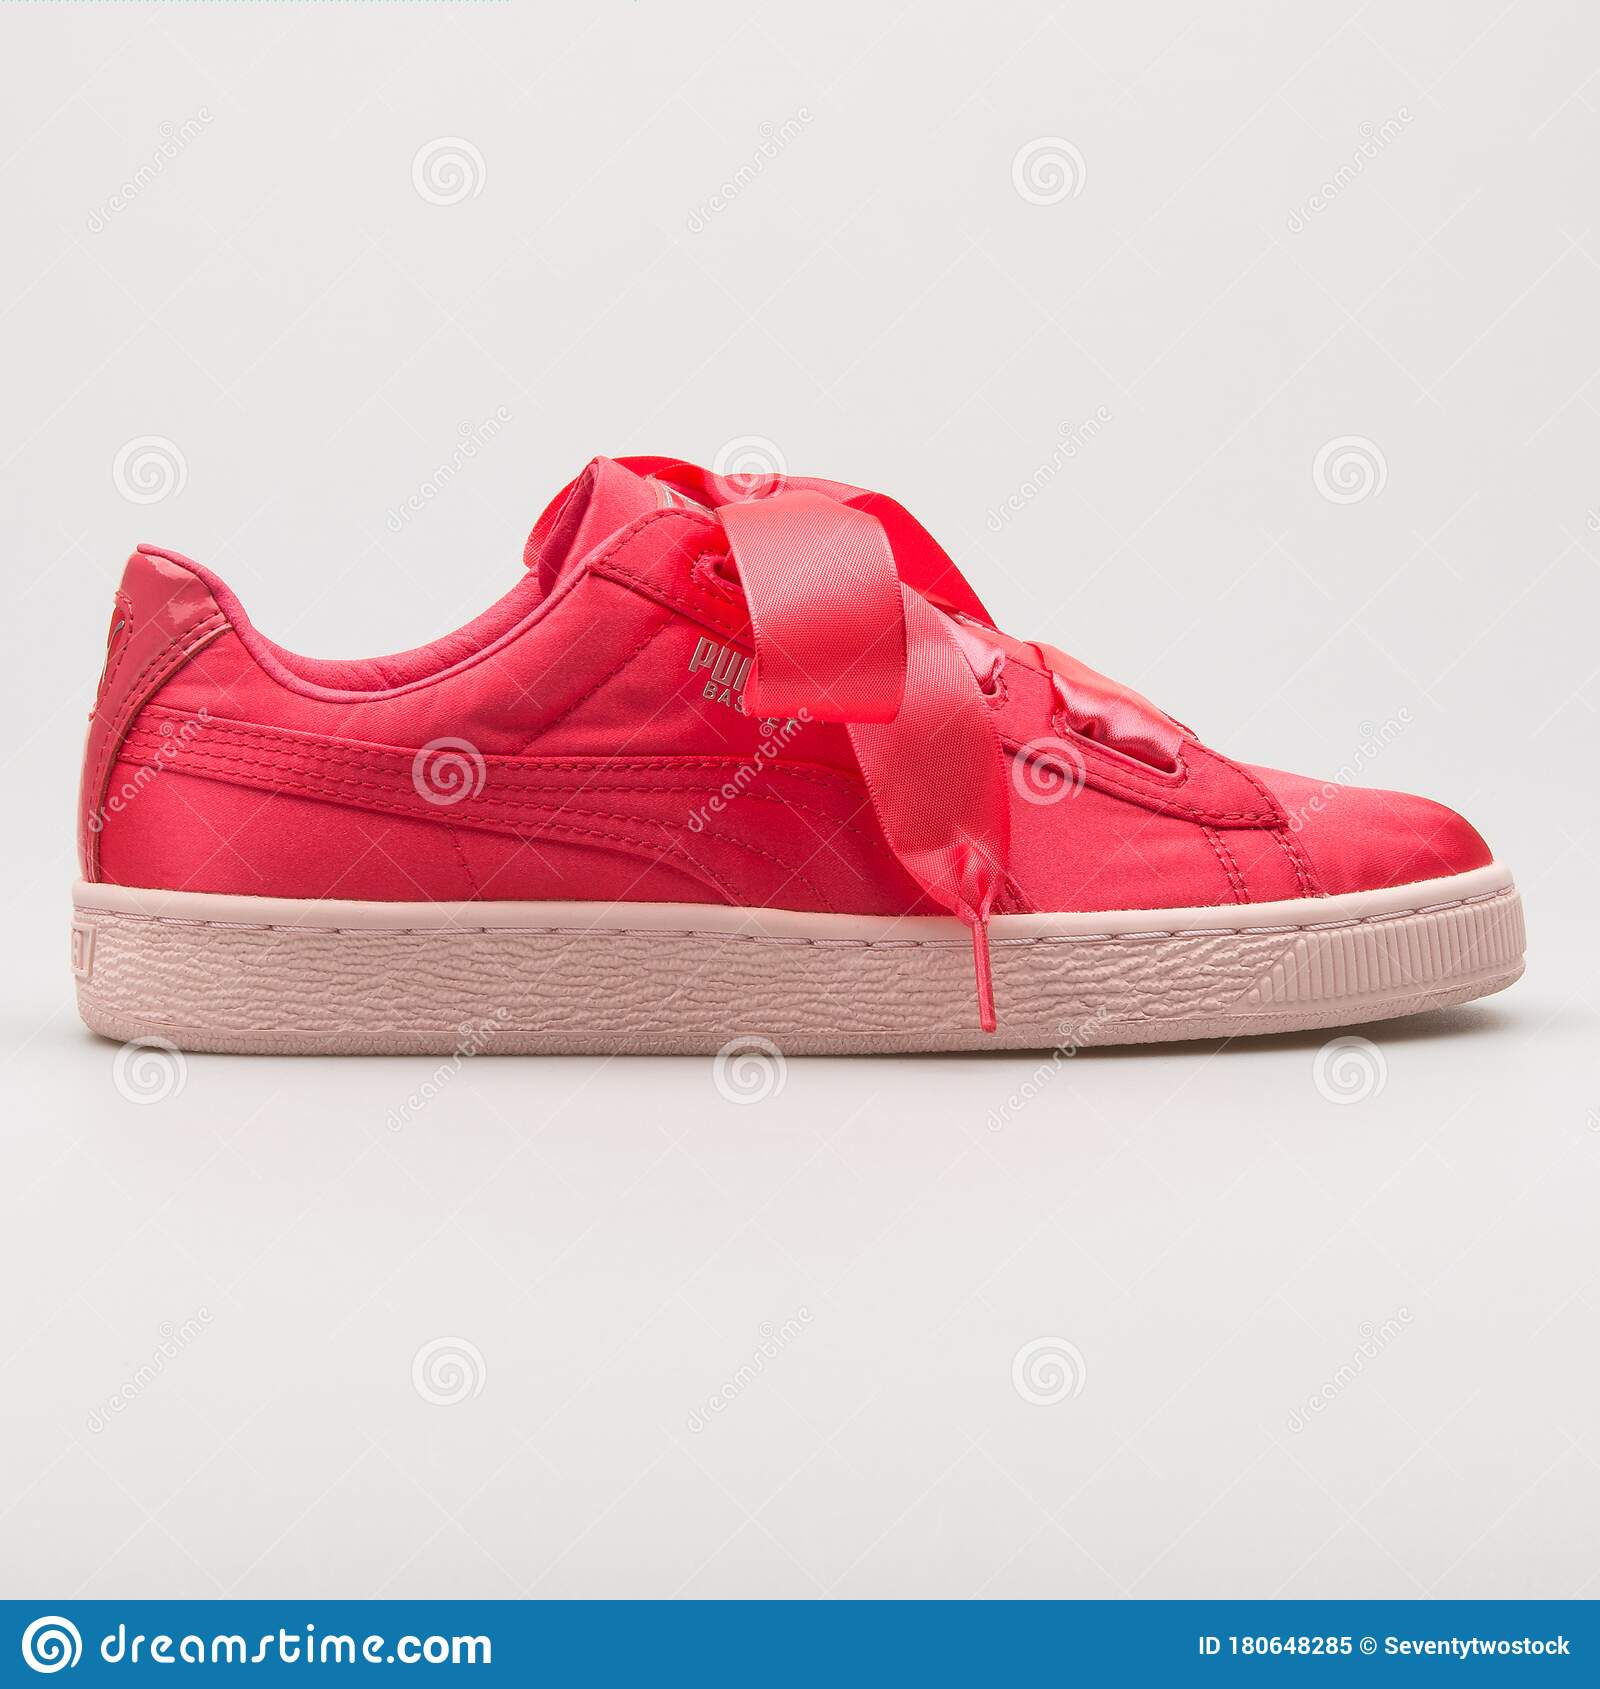 Puma Basket Photos - Free & Royalty-Free Stock Photos from Dreamstime